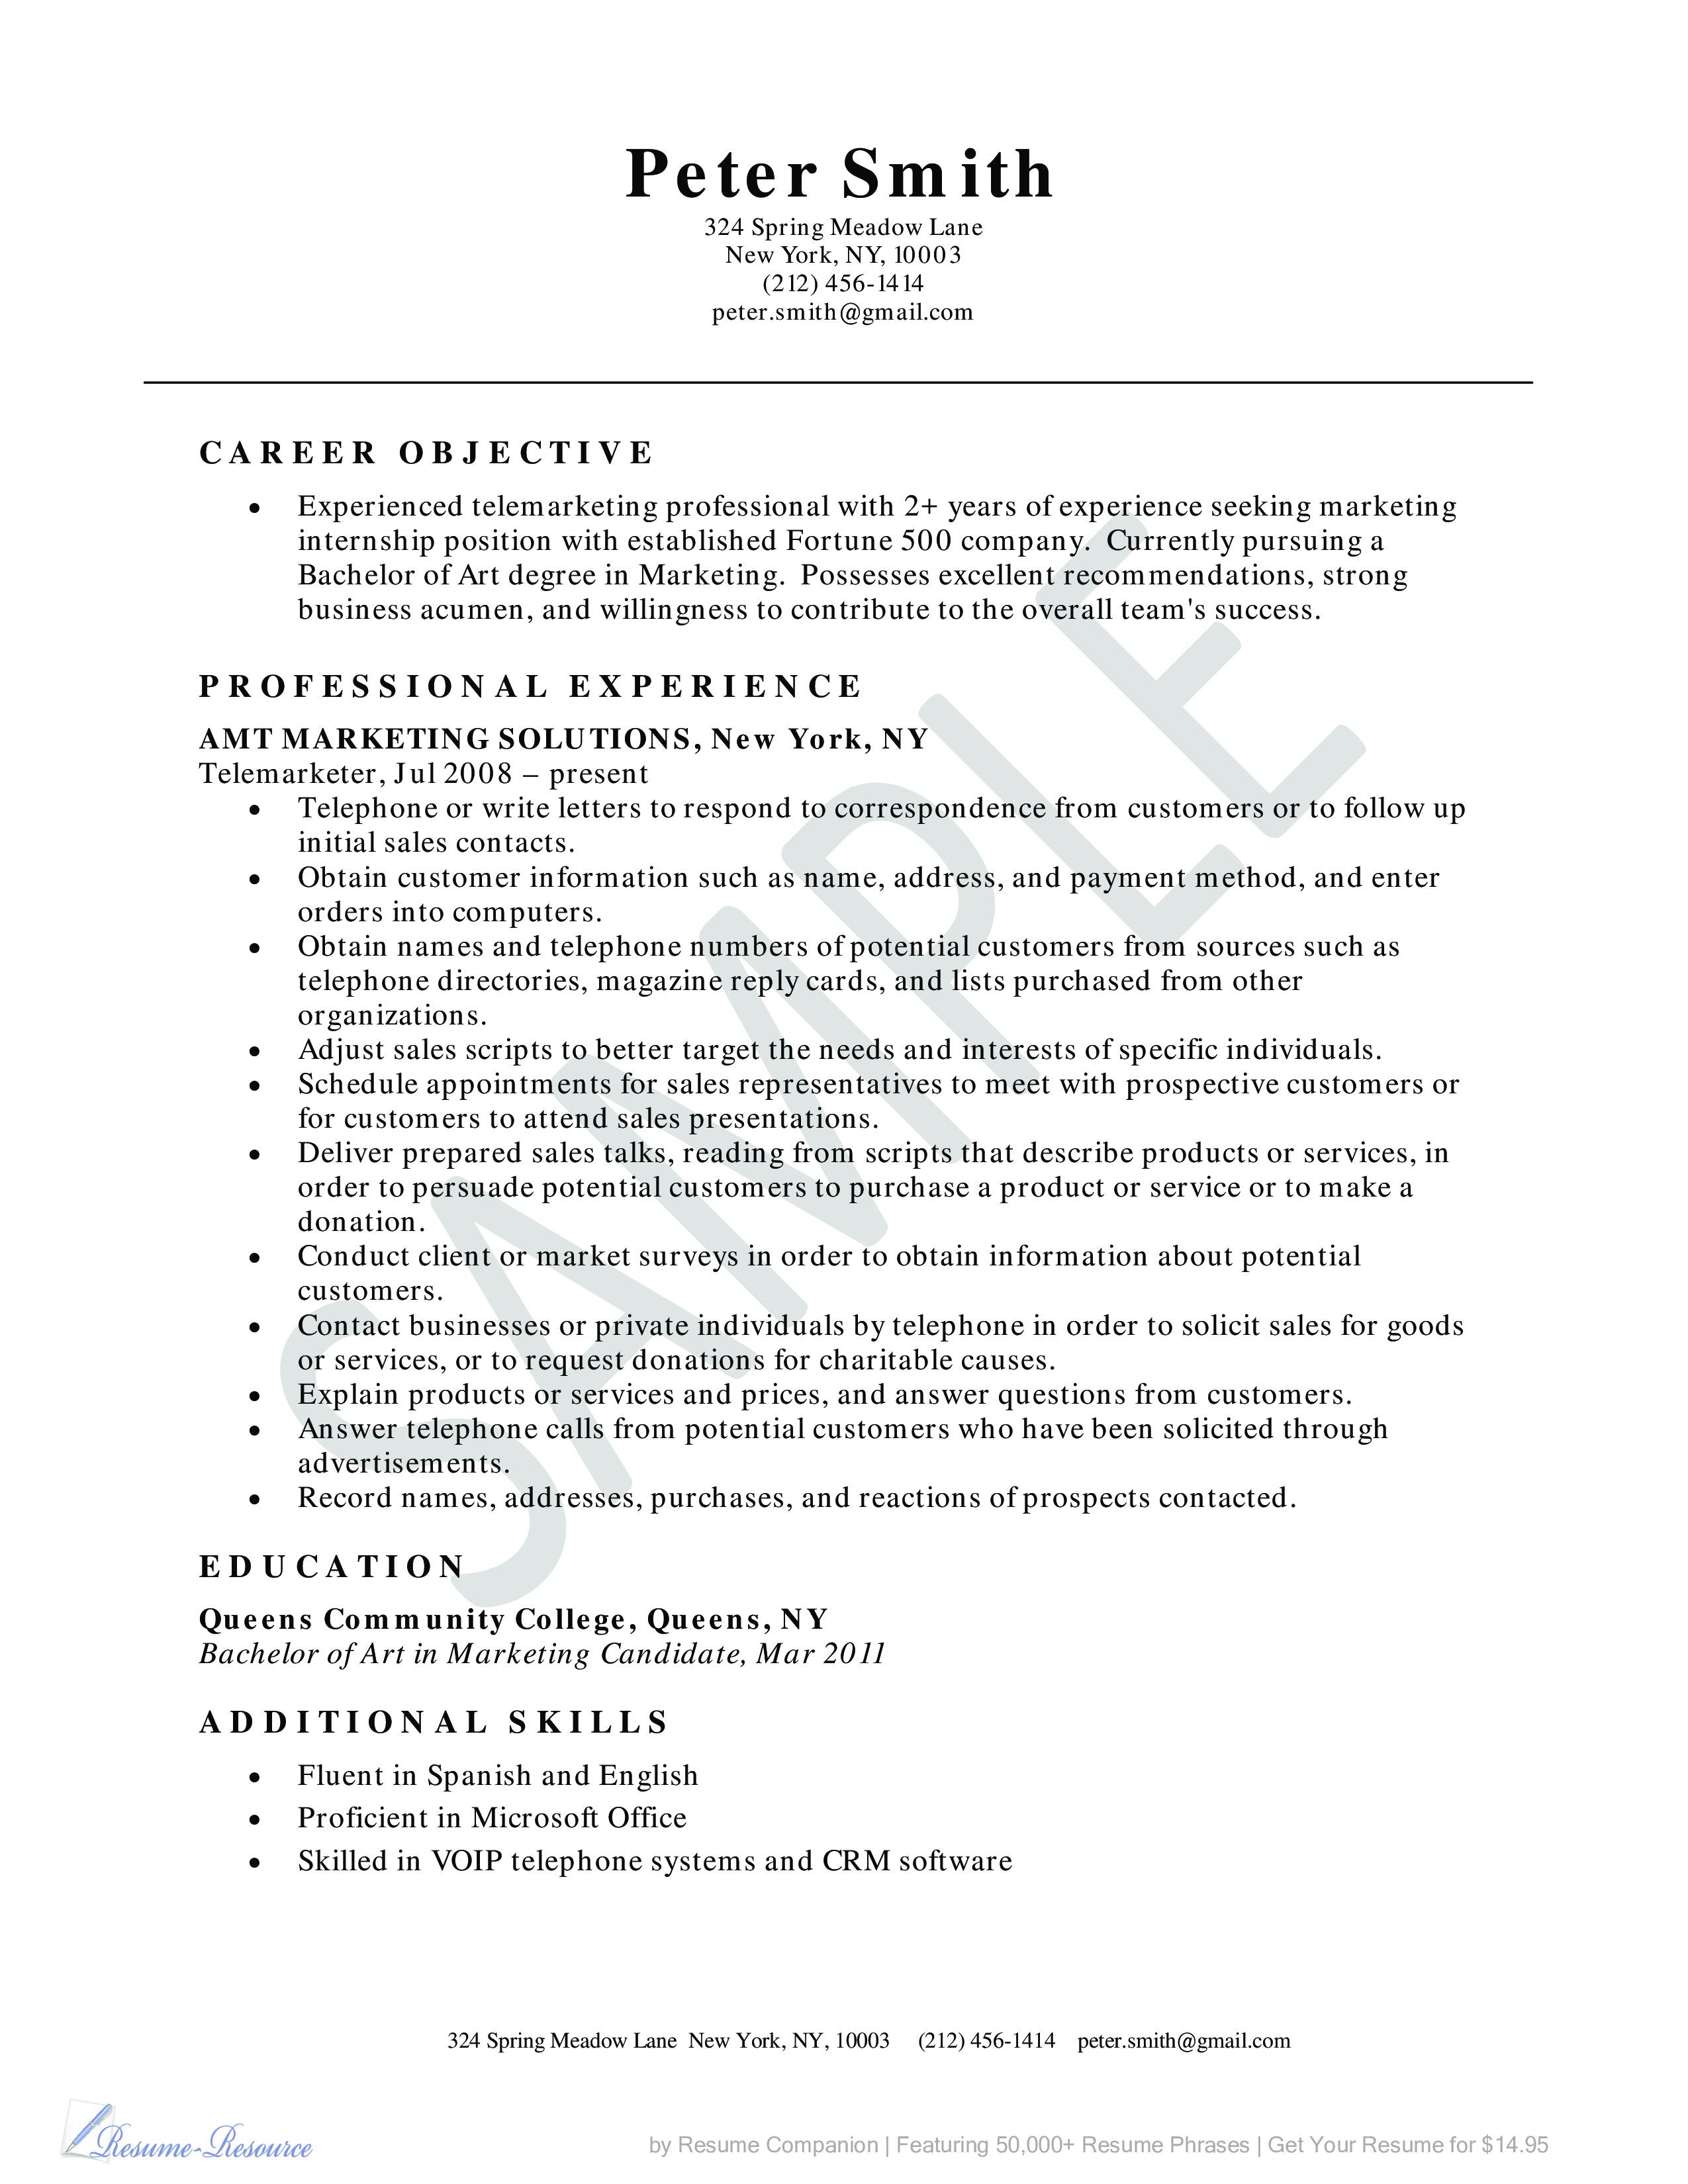 telemarketer resume example business resume example - Telemarketing Resume Samples